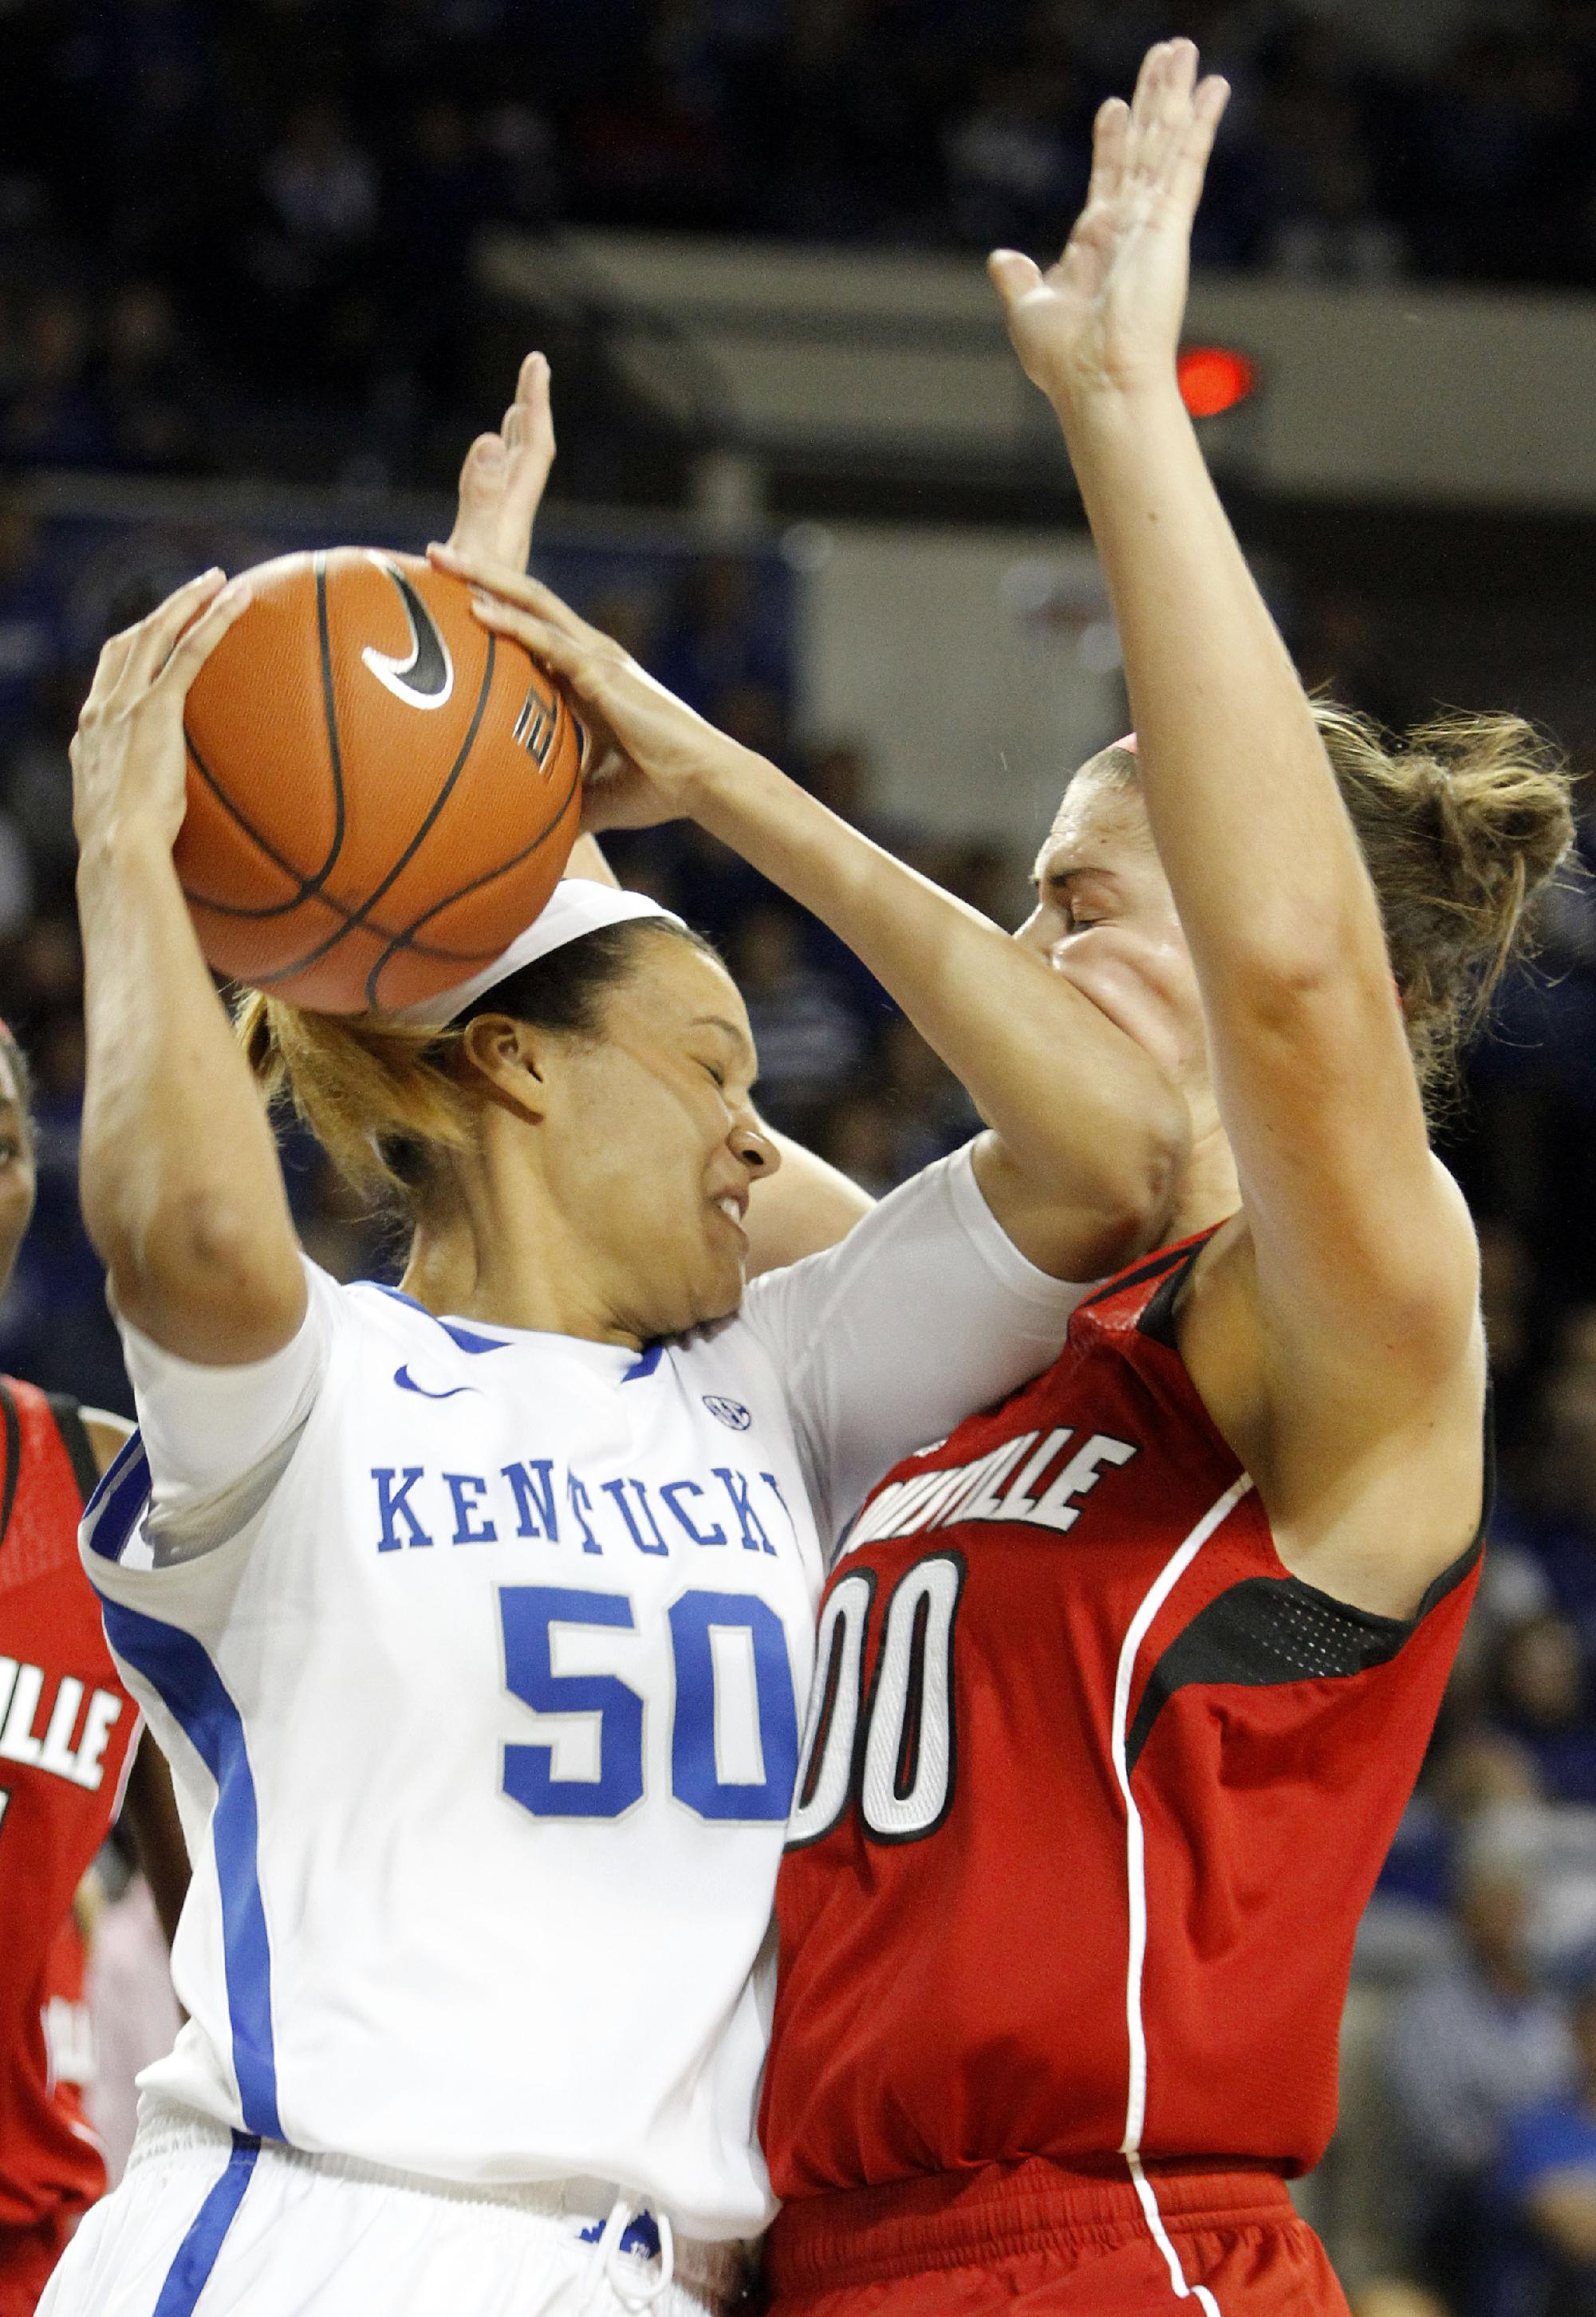 Kentucky's Azia Bishop (50) pulls down a rebound and is called for a foul next to Louisville's Sara Hammond (00) during the first half of an NCAA college basketball game on Sunday, Dec. 1, 2013, in Lexington, Ky